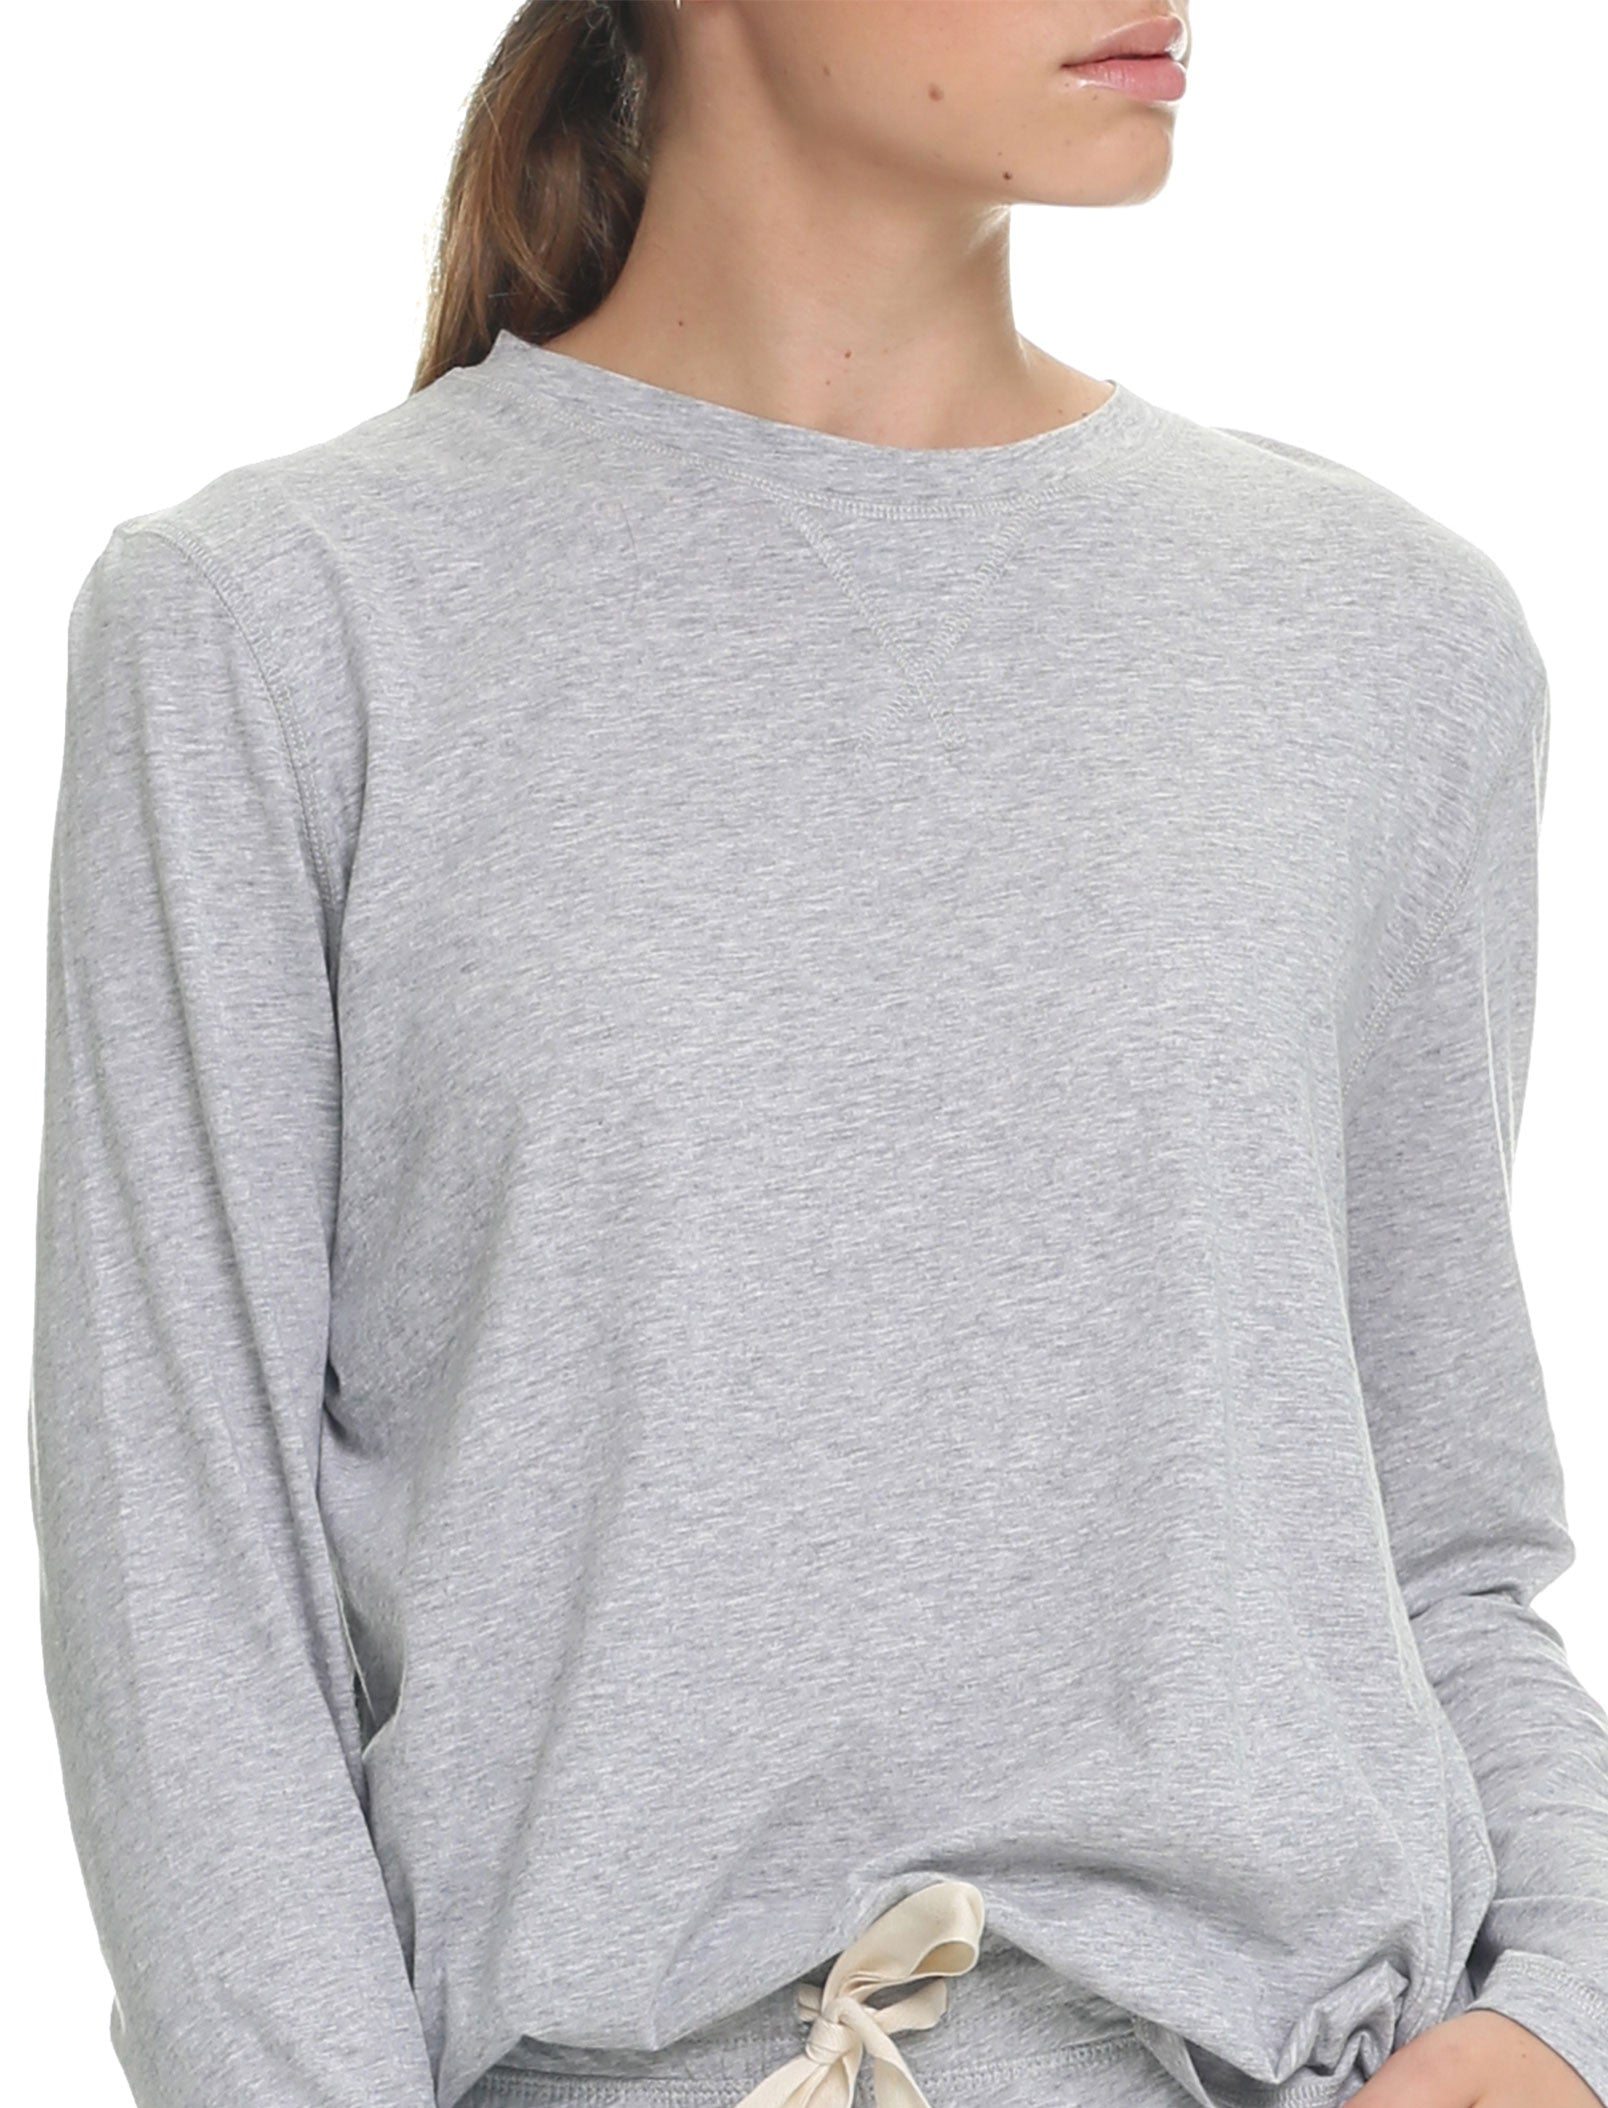 Organic Cotton Knit Long Sleeve Tee in Grey